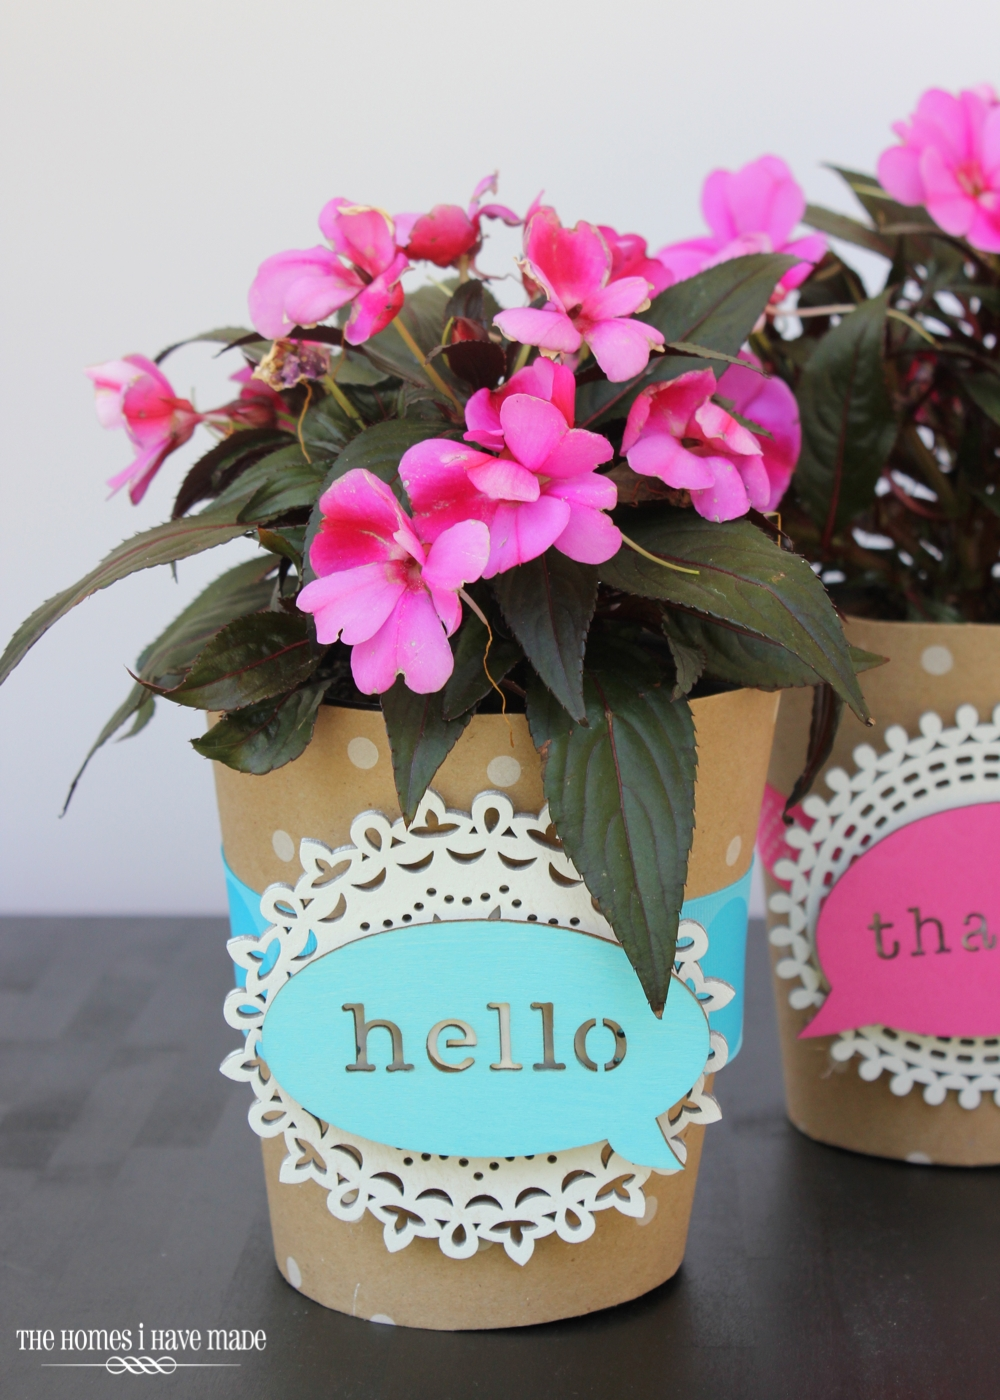 Flower Sentiment Gifts-013